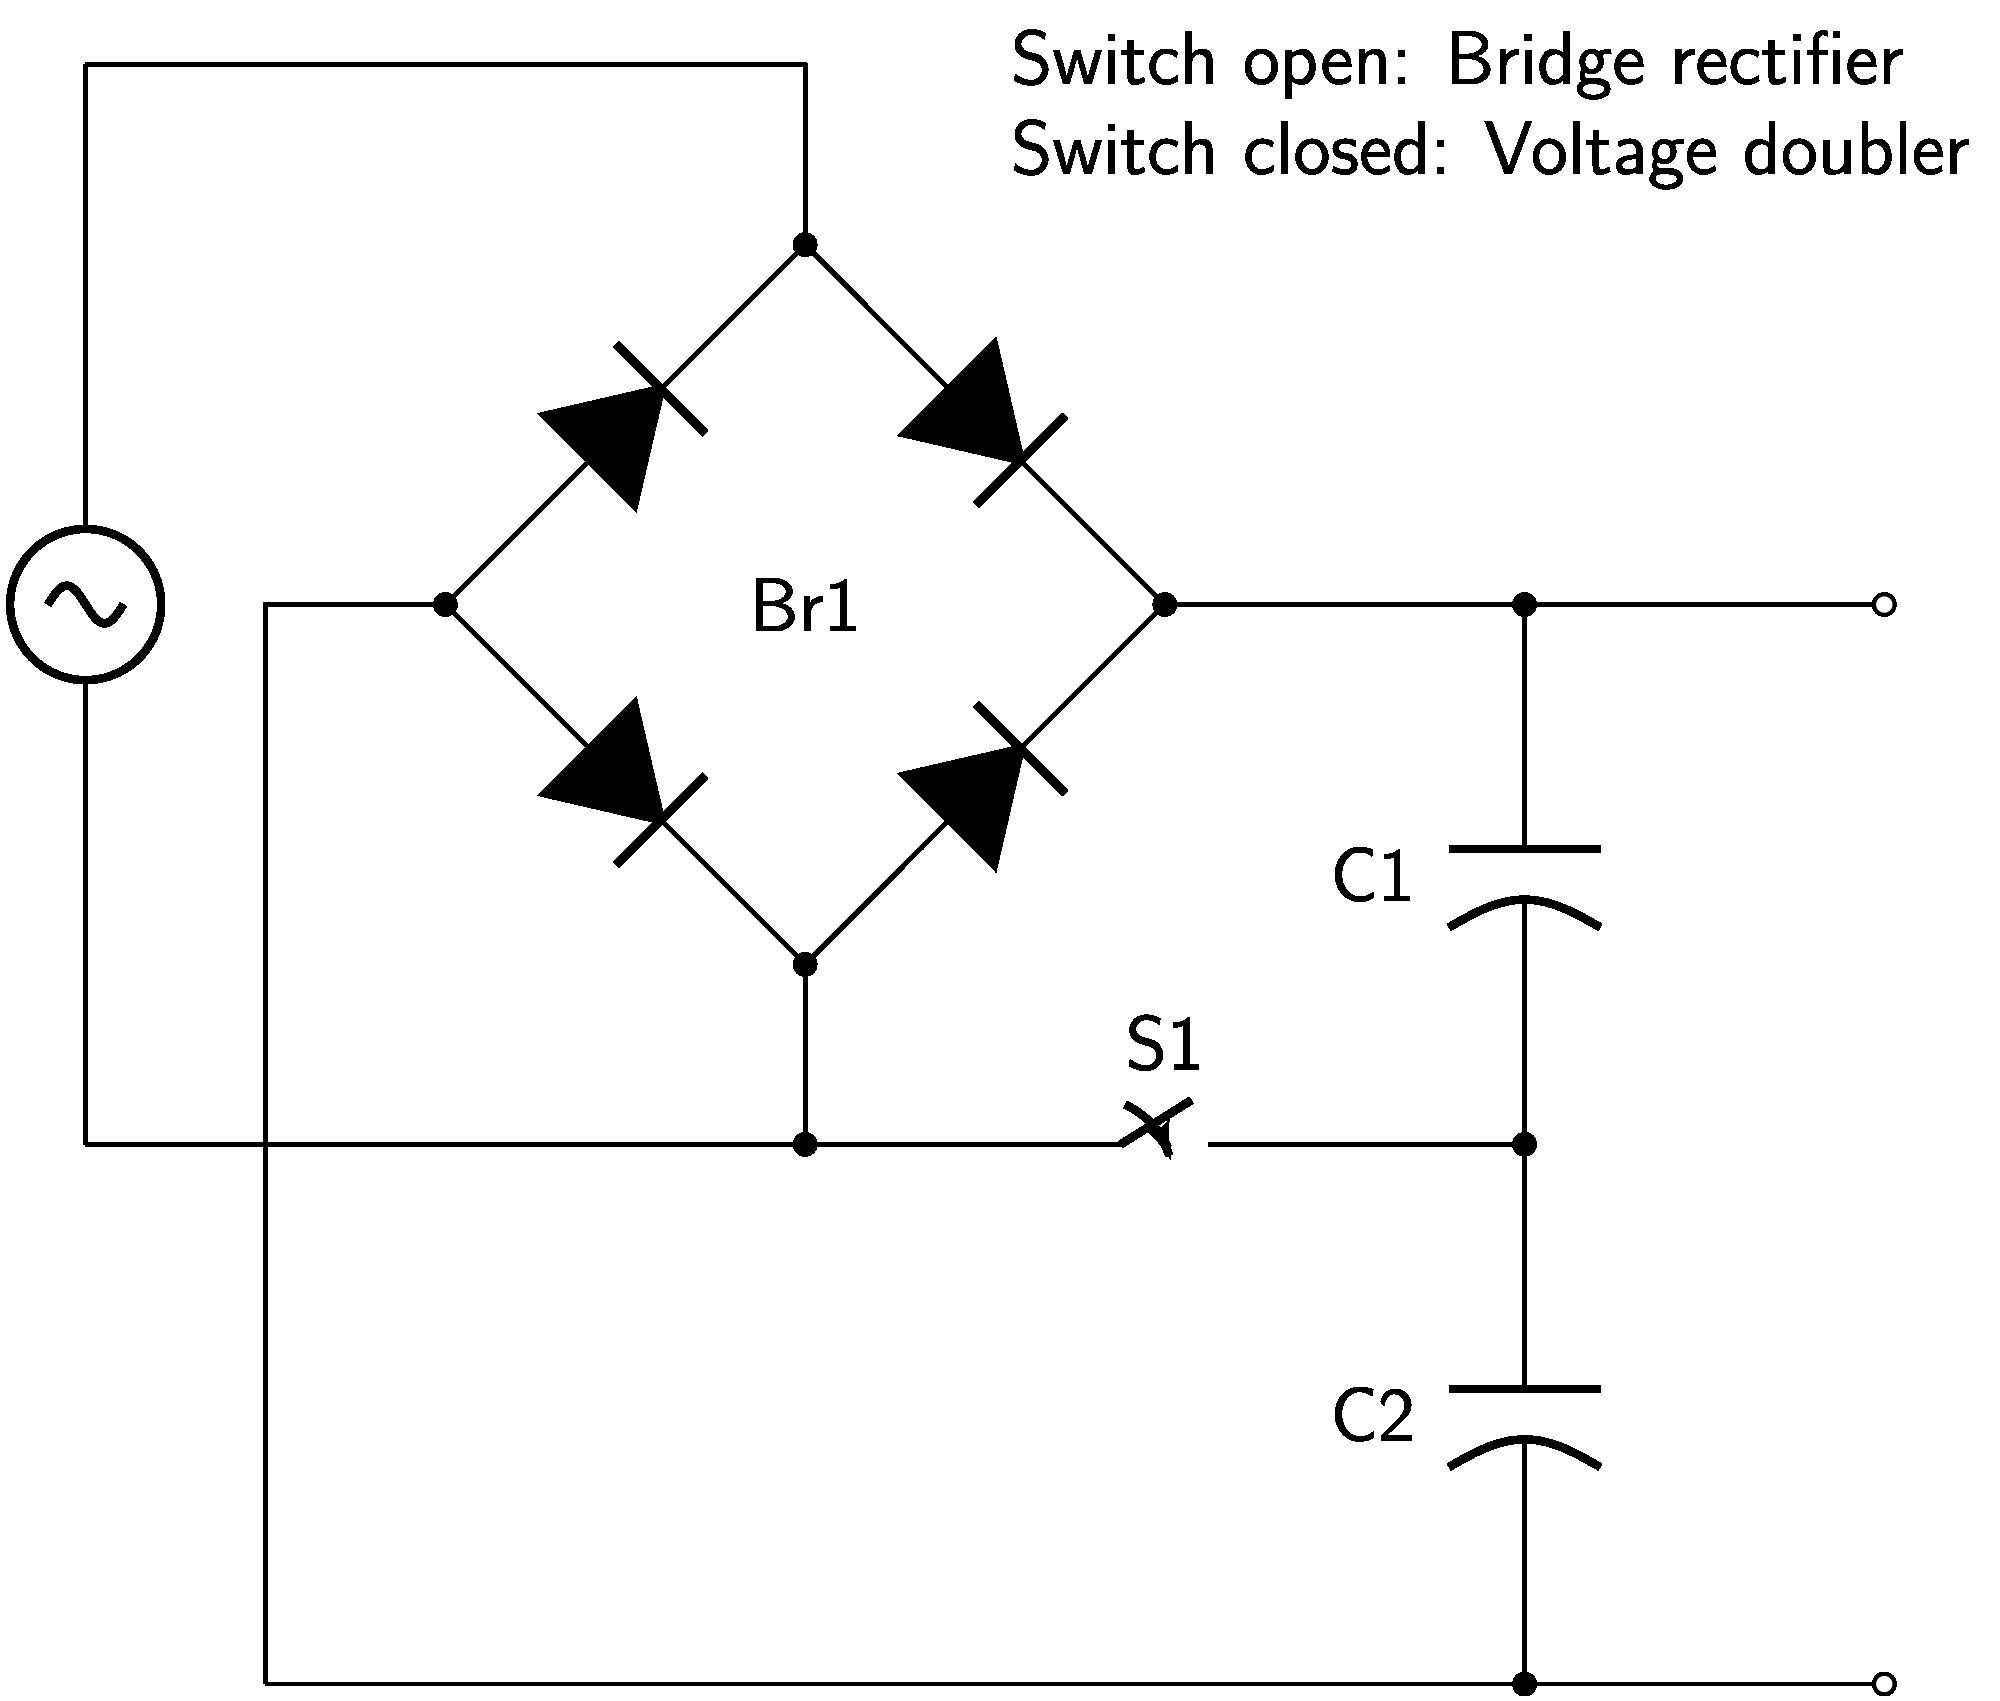 hight resolution of way bridge rectifier wiring diagram components tube unusual kbpc3510way bridge rectifier wiring diagram components tube unusual